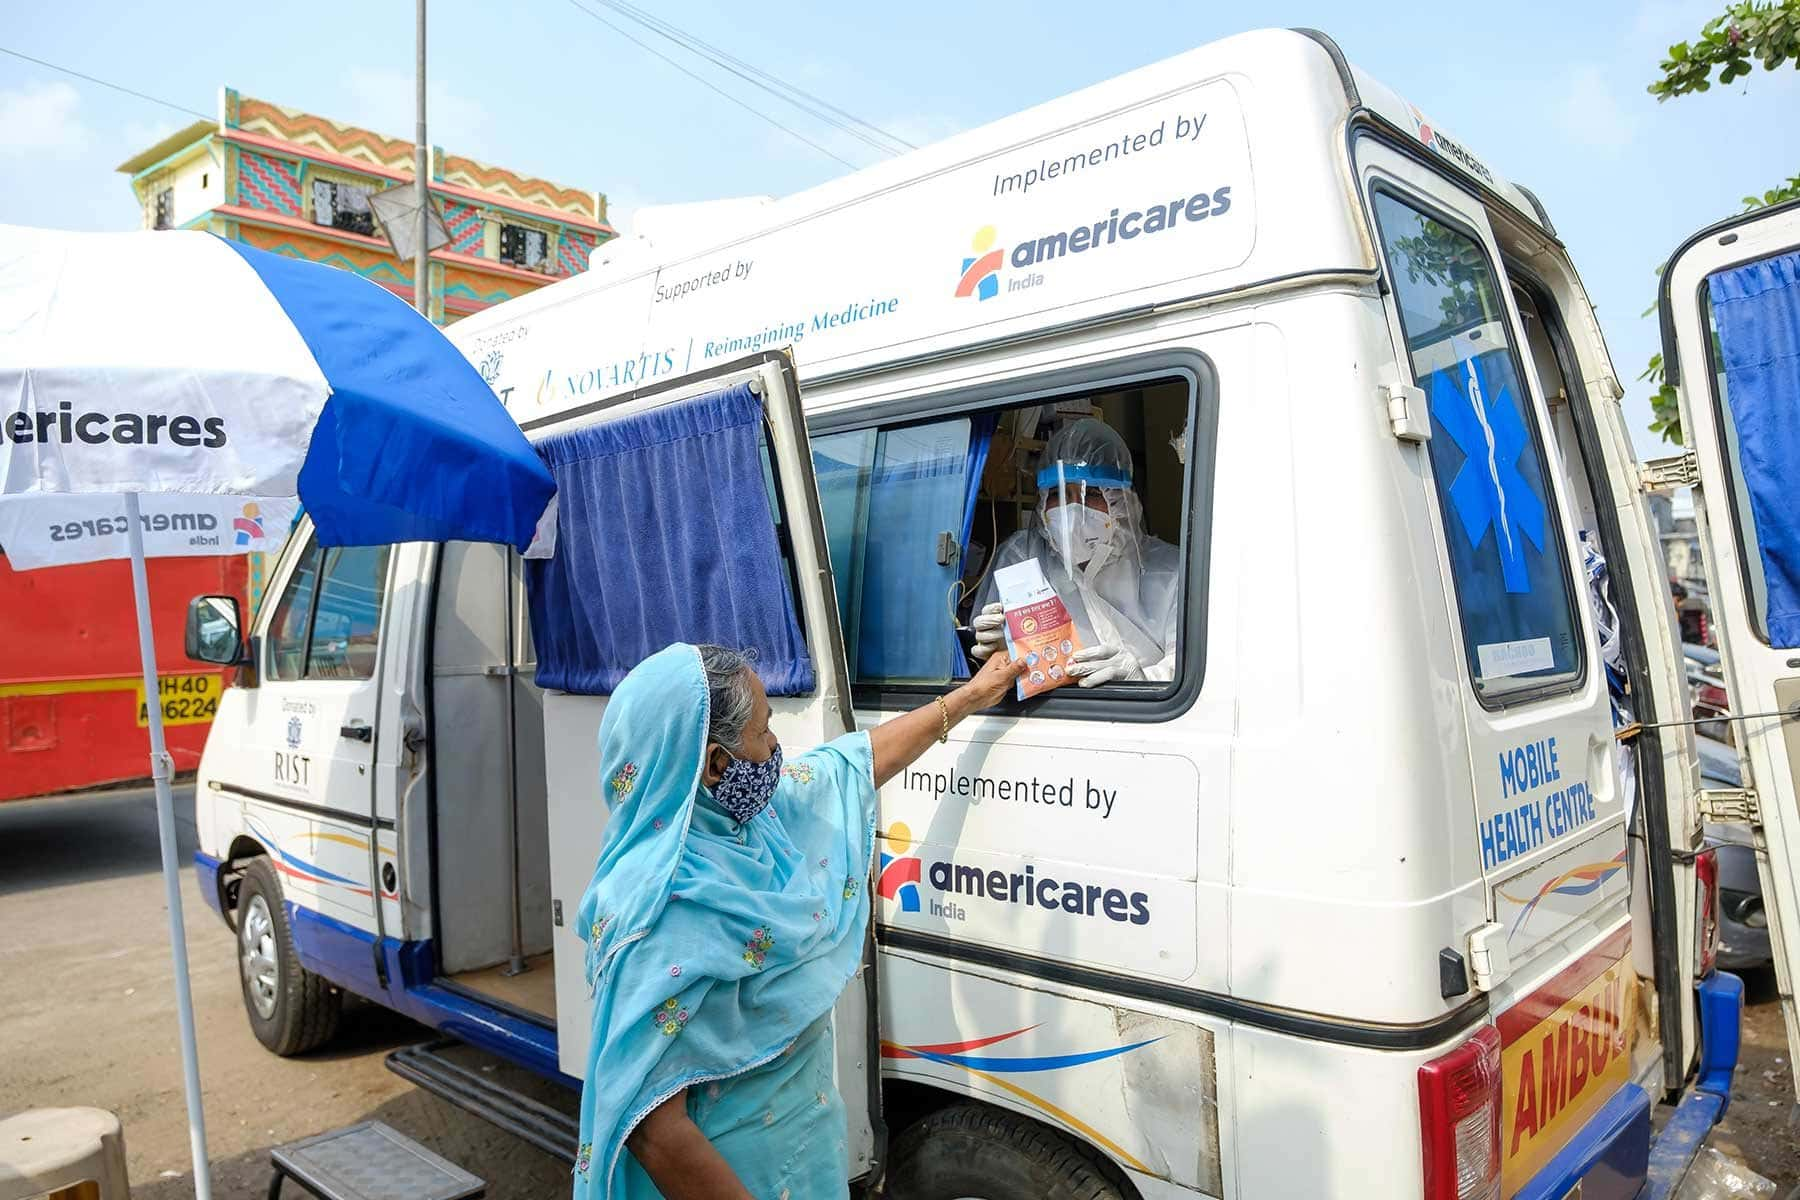 Americares plans to provide expanded support to 30 health facilities in the 10 states with the highest case counts.